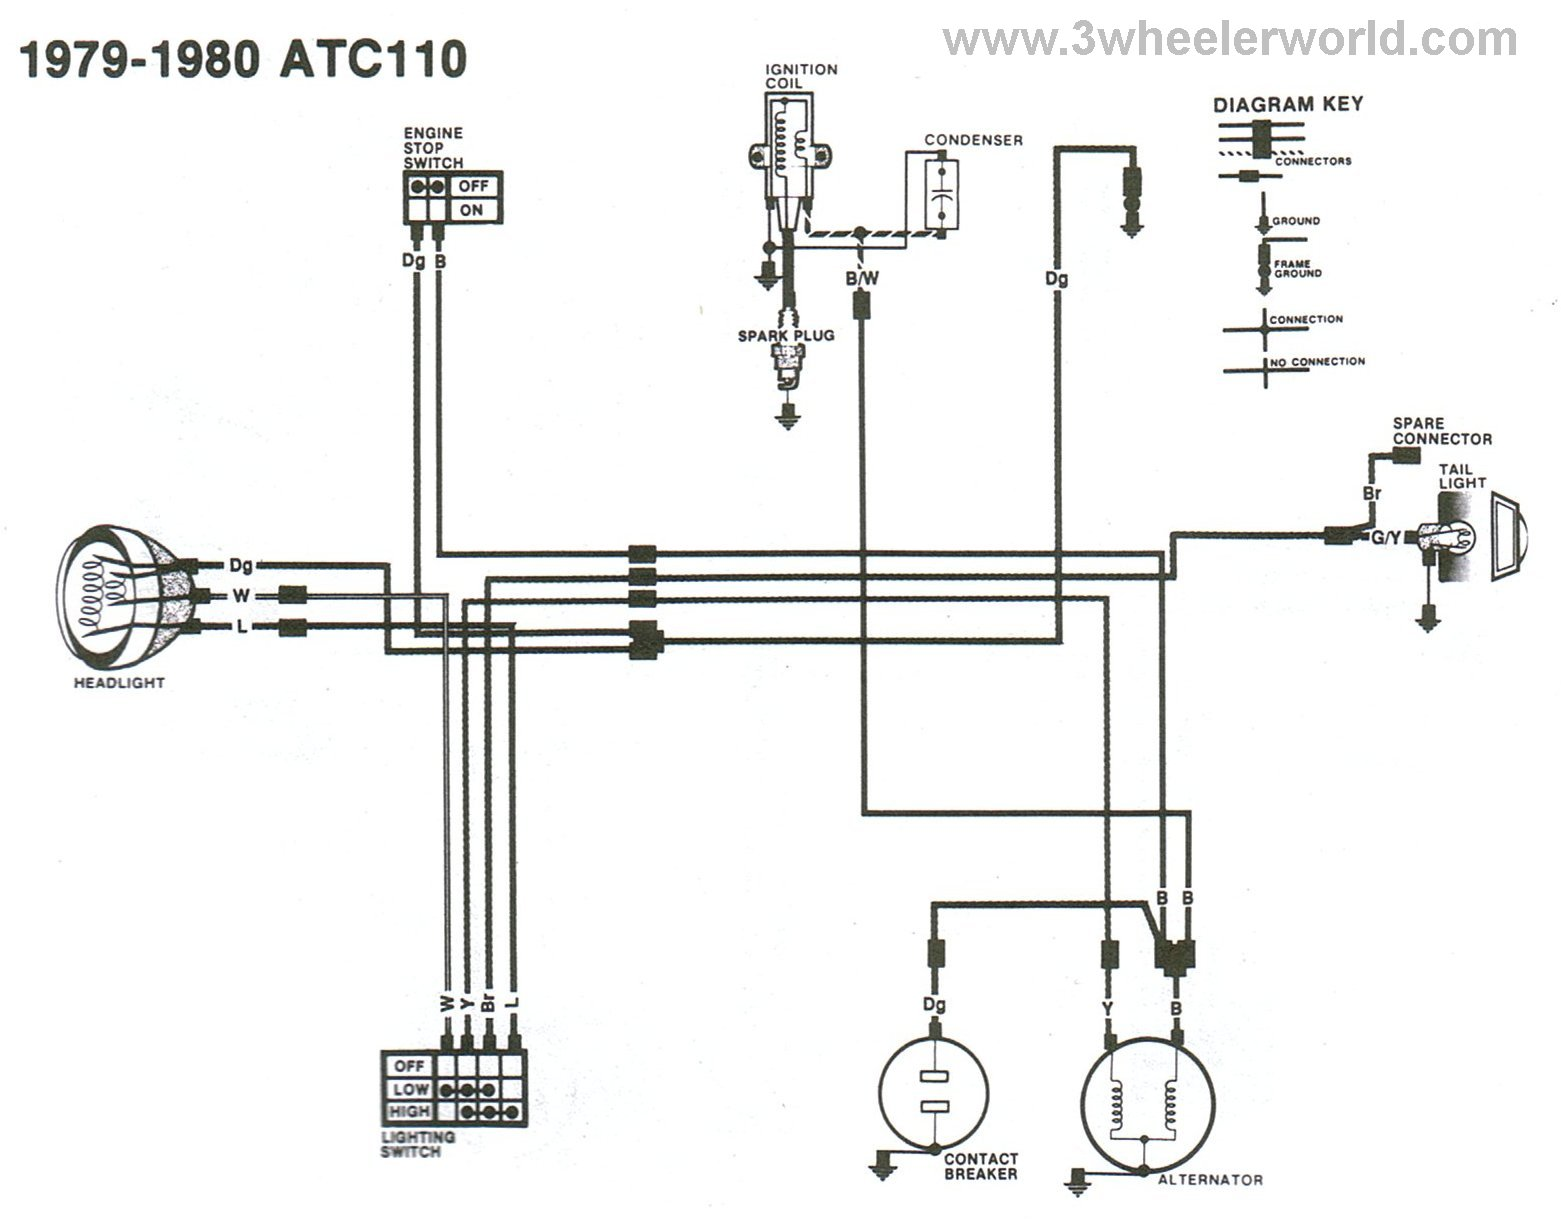 wheeler world honda atc wiring diagrams